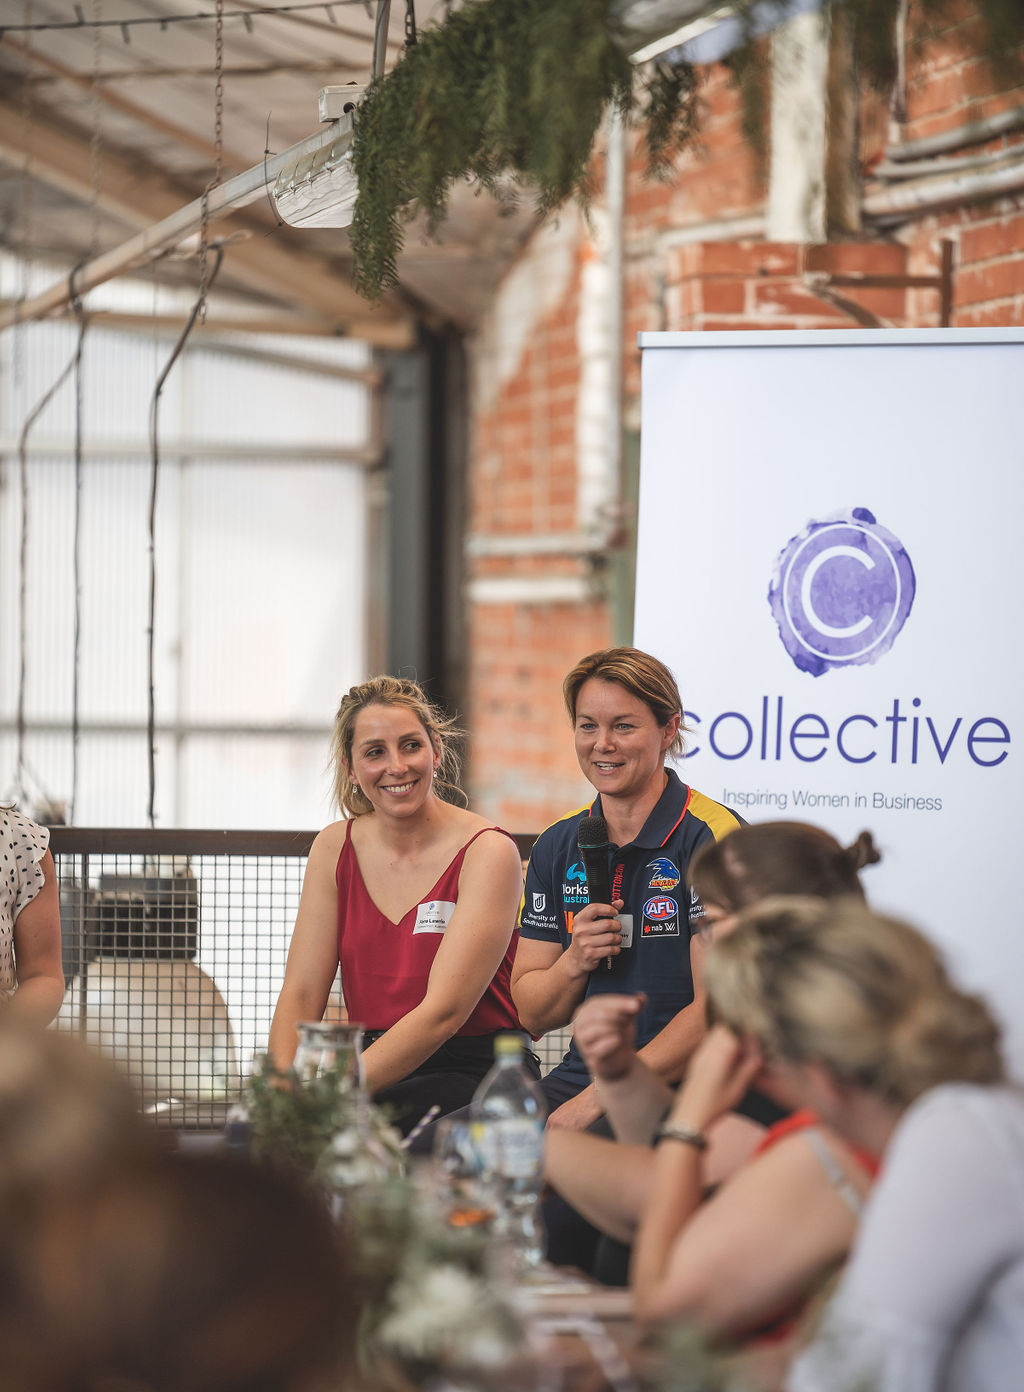 AFLW star Courtney Cramey teams up with Fiona Lawrie to headline local launch of Collective